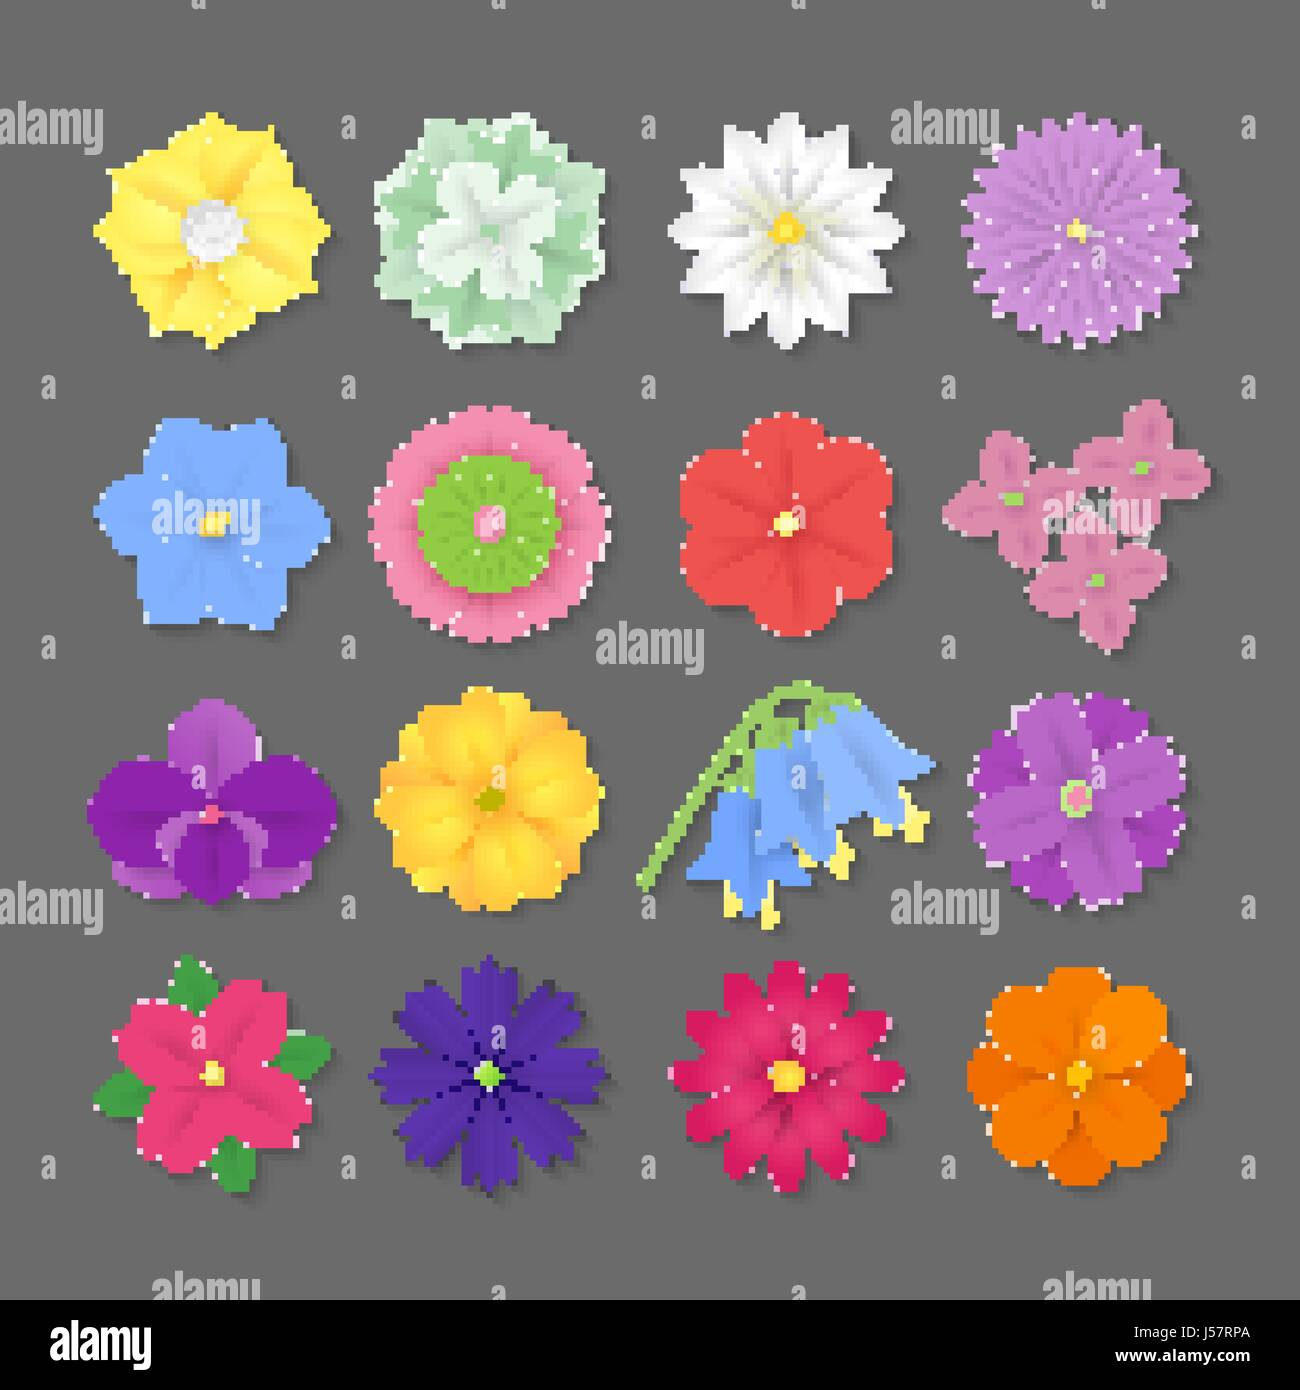 Colorful Vector Paper Flowers Illustration 3d Origami Abstract